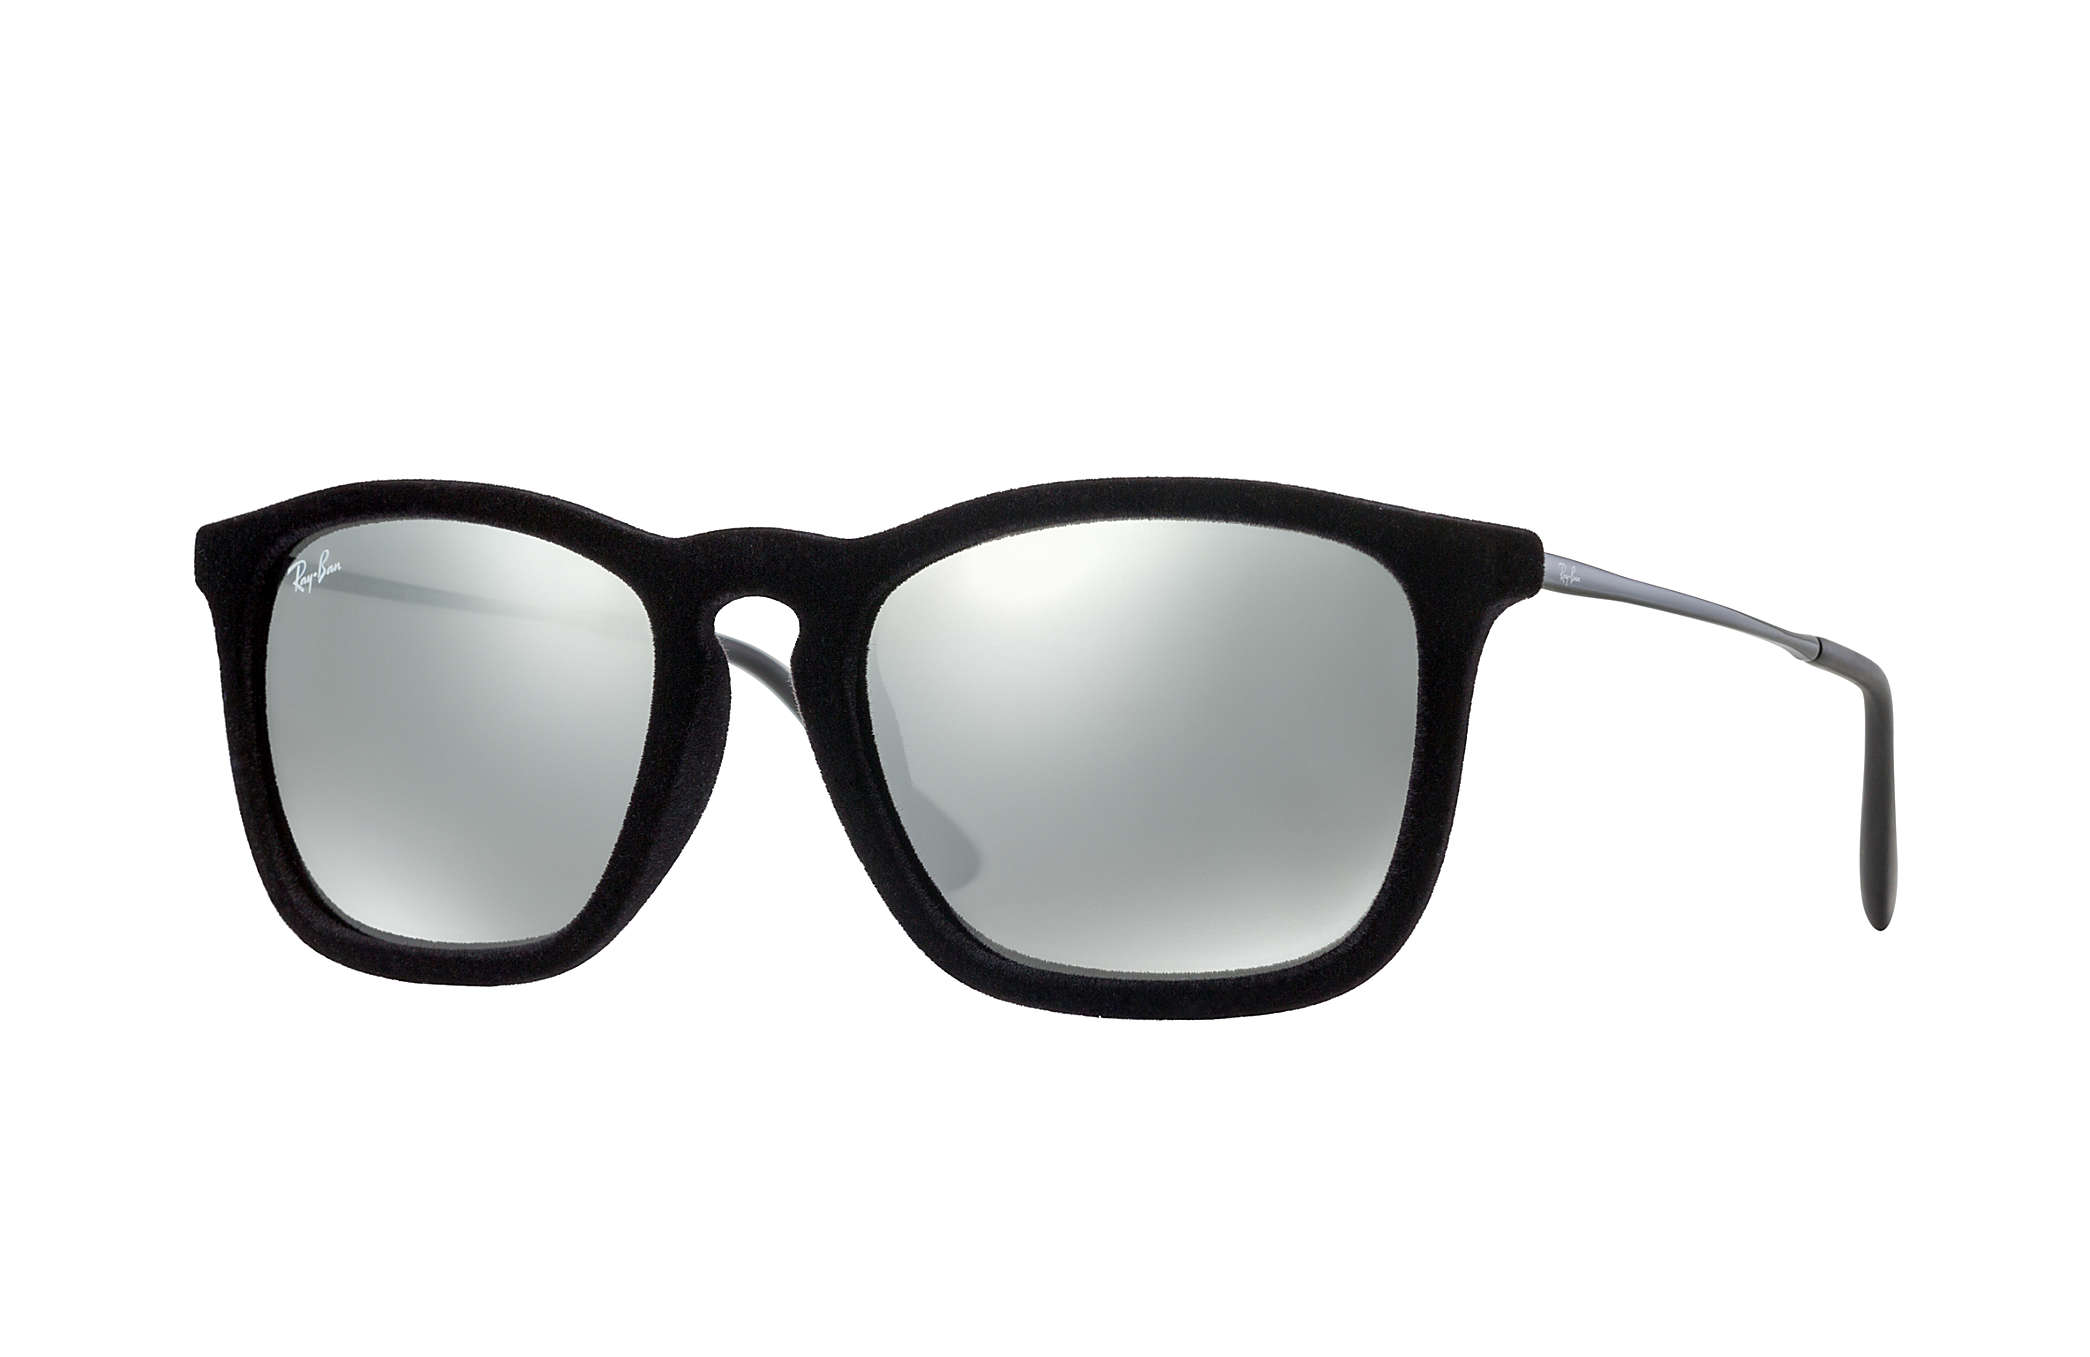 4d5b01943e Ray-Ban Chris Velvet RB4187 Black Velvet - Nylon - Grey Lenses ...